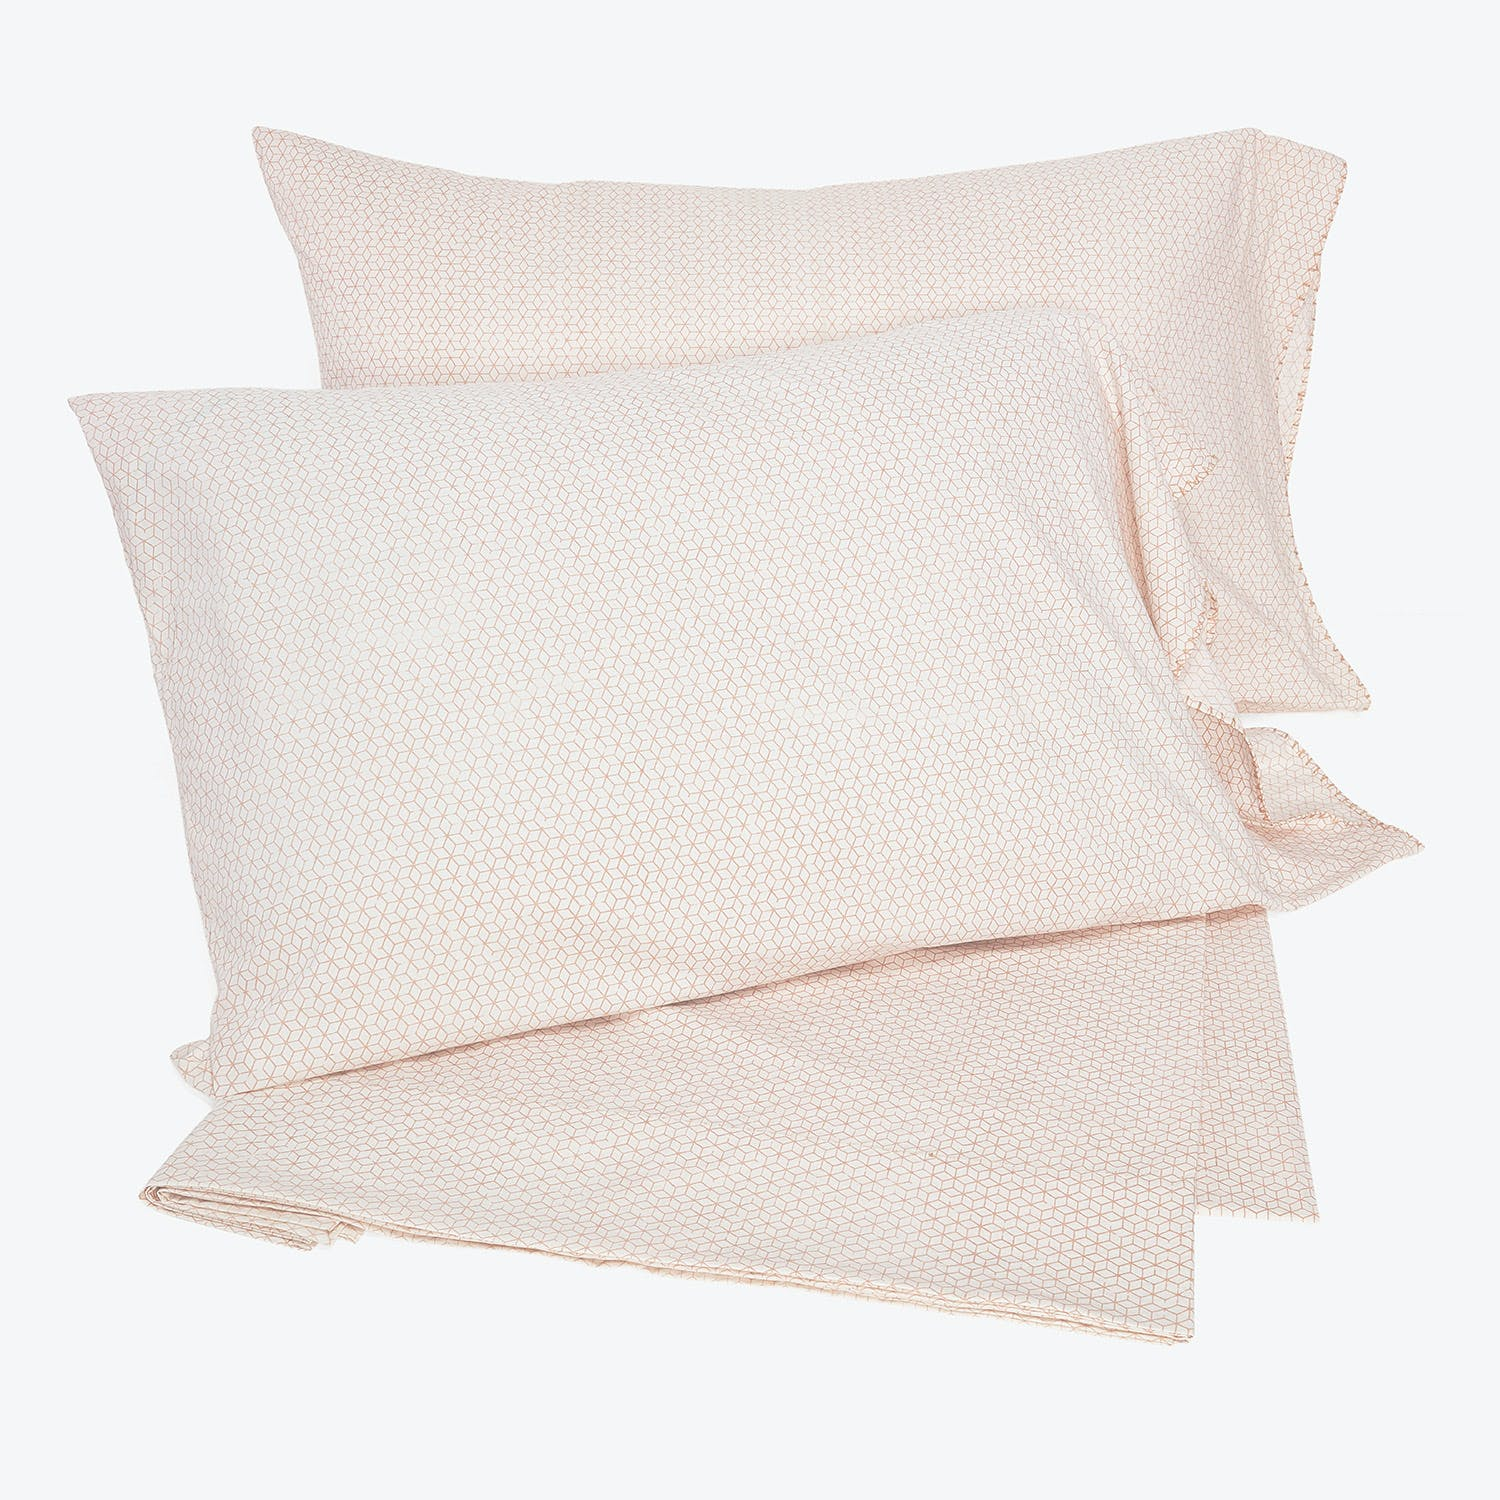 Product Image - Abcdna Haath Percale Sheet Set Pinwheel Shell